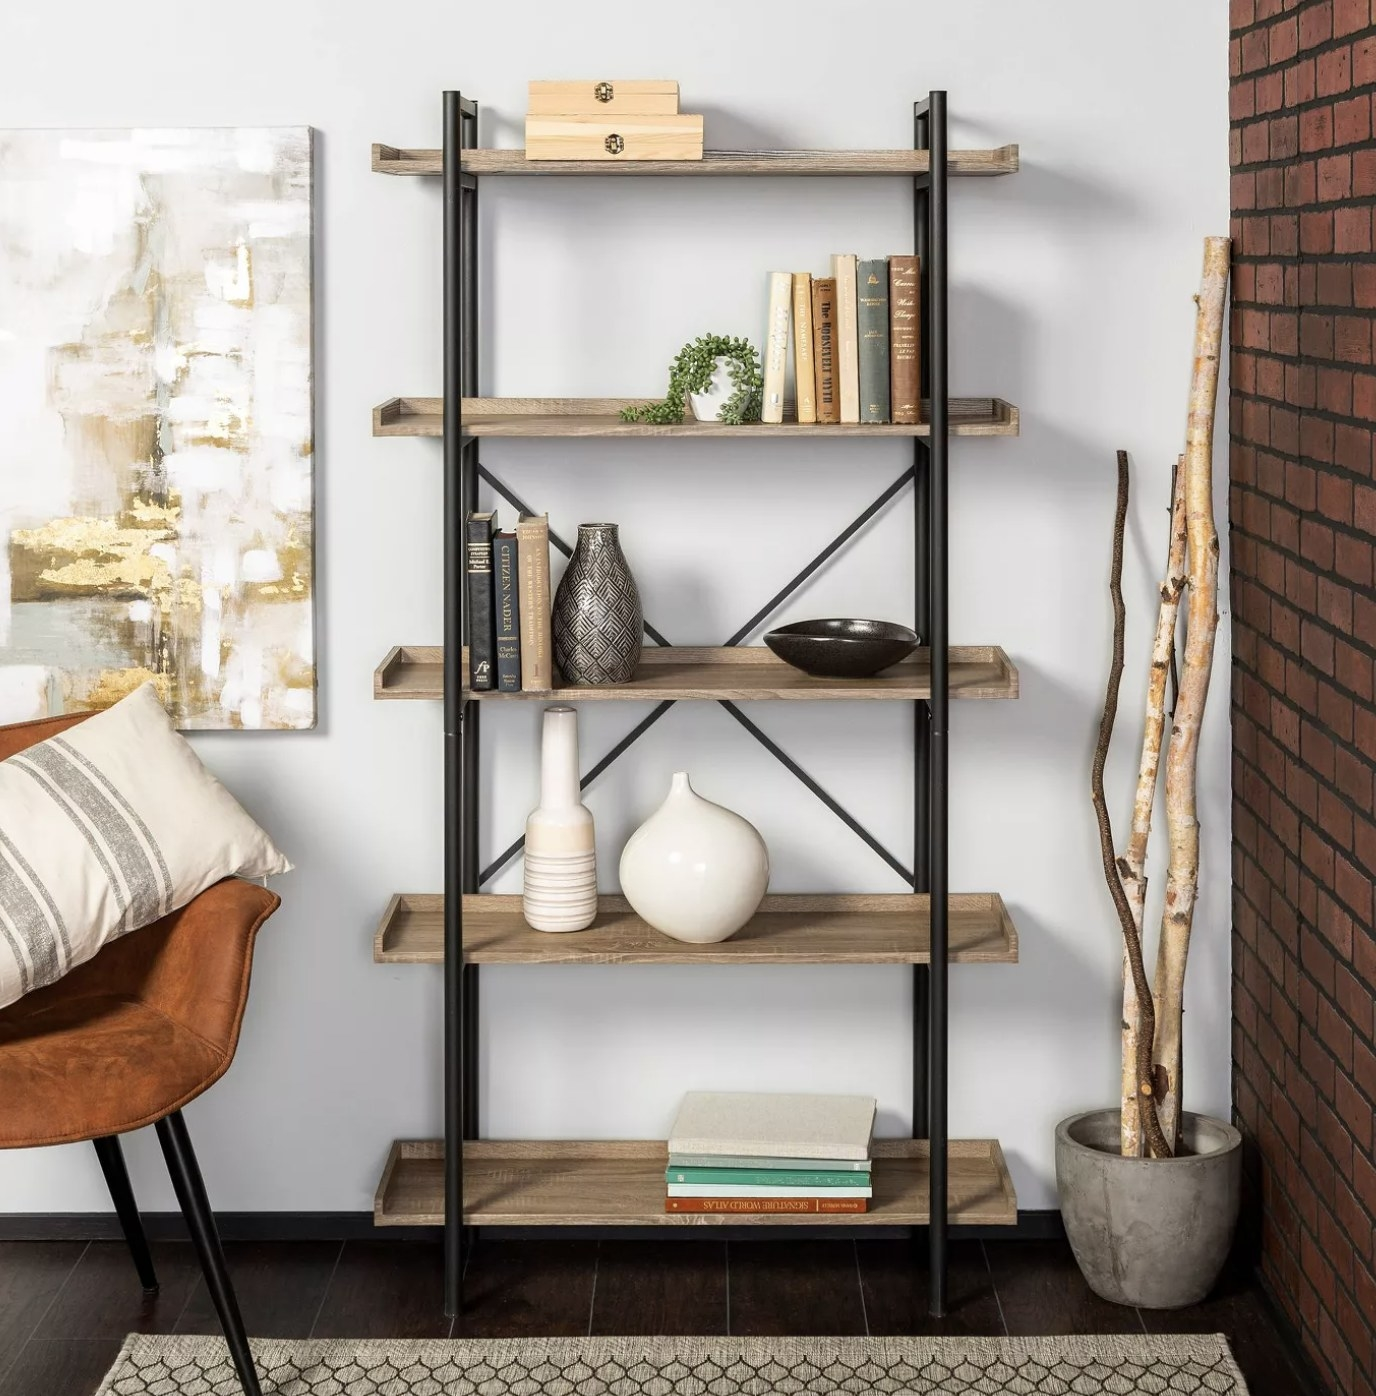 the bookshelf with wood shelves and black metal poles